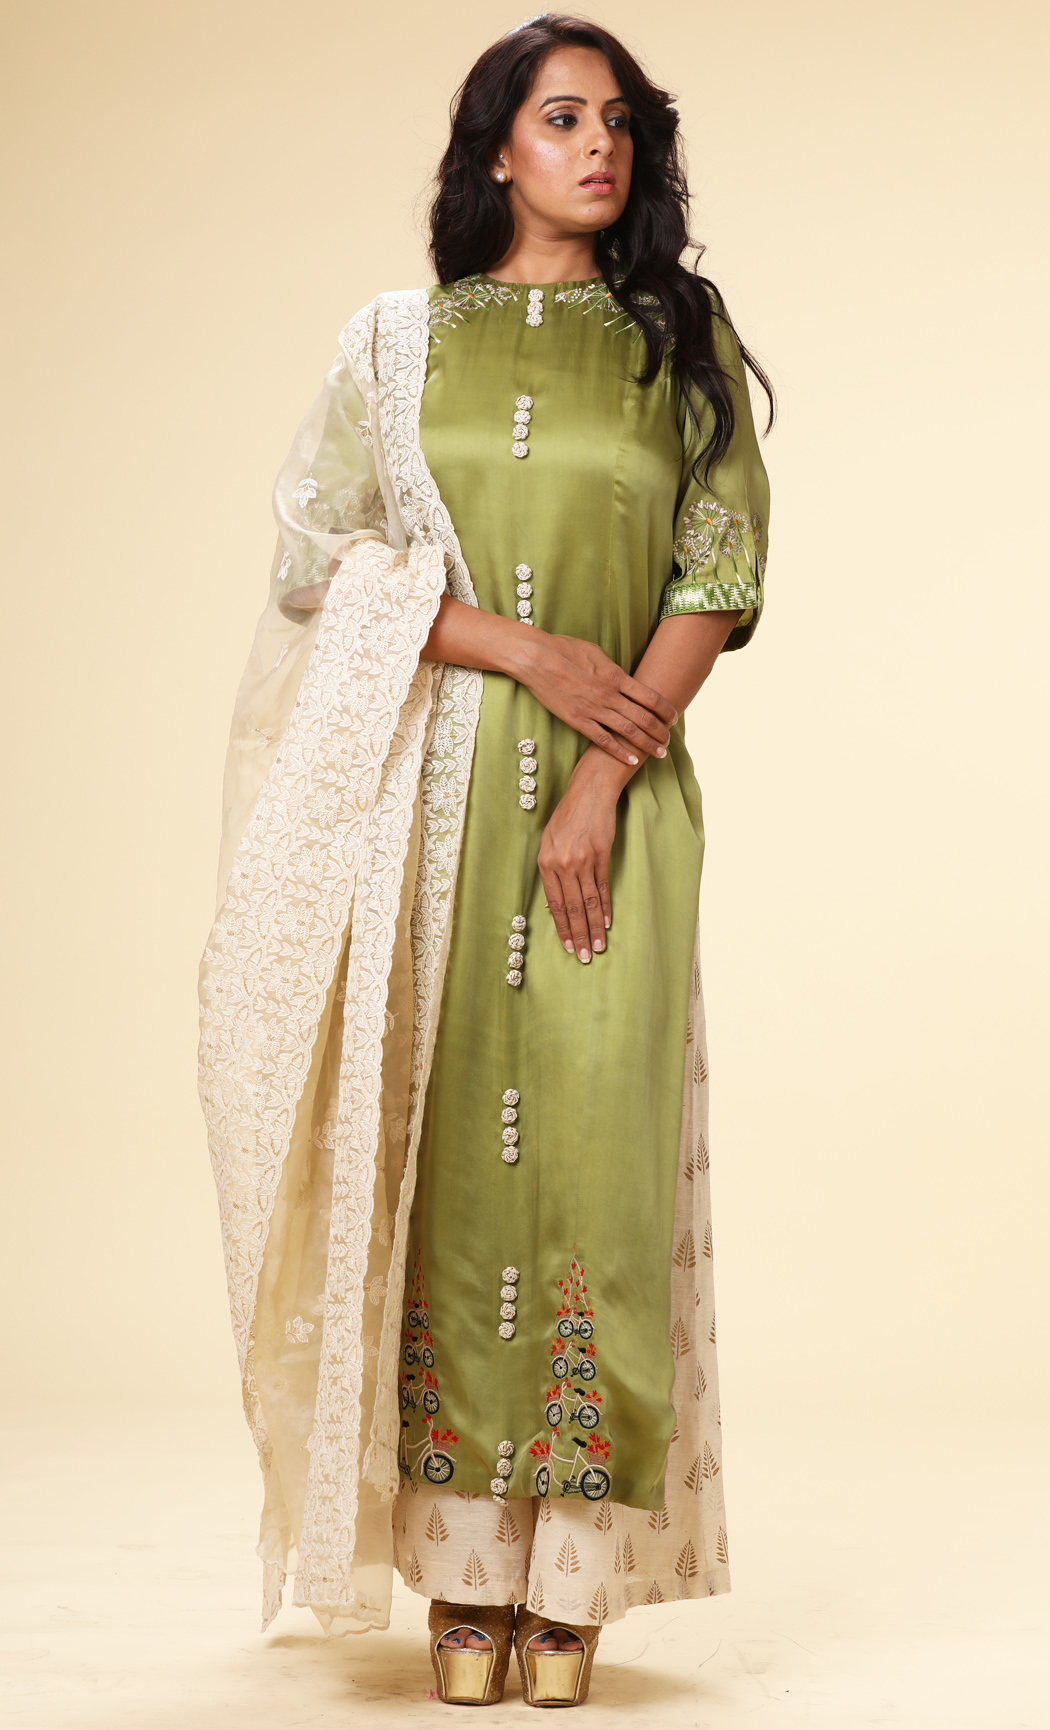 Green Straight Kurta with an Off-White Dupatta and Pants - Buy Online